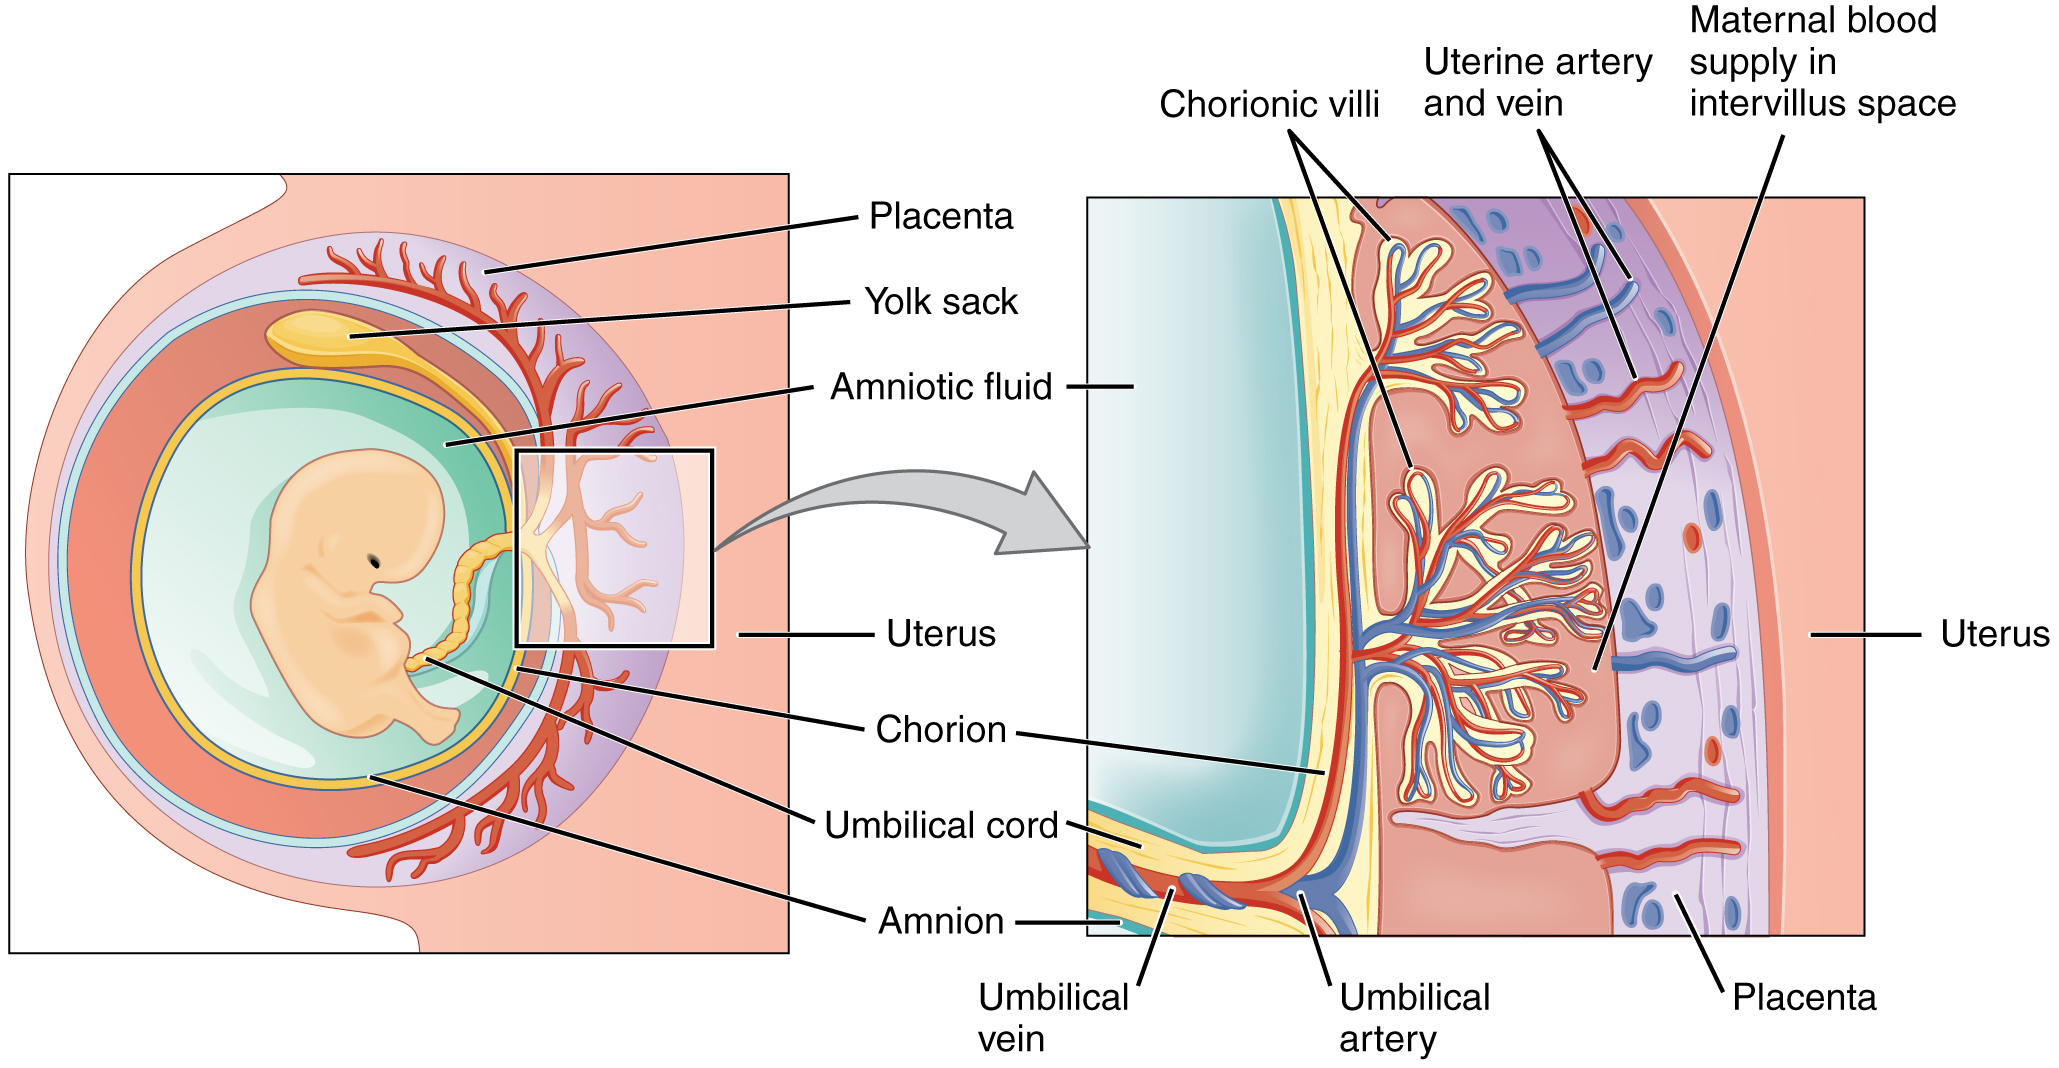 Embryonic development anatomy and physiology in the placenta maternal and fetal blood components are conducted through the surface of the chorionic villi but maternal and fetal bloodstreams never mix pooptronica Choice Image